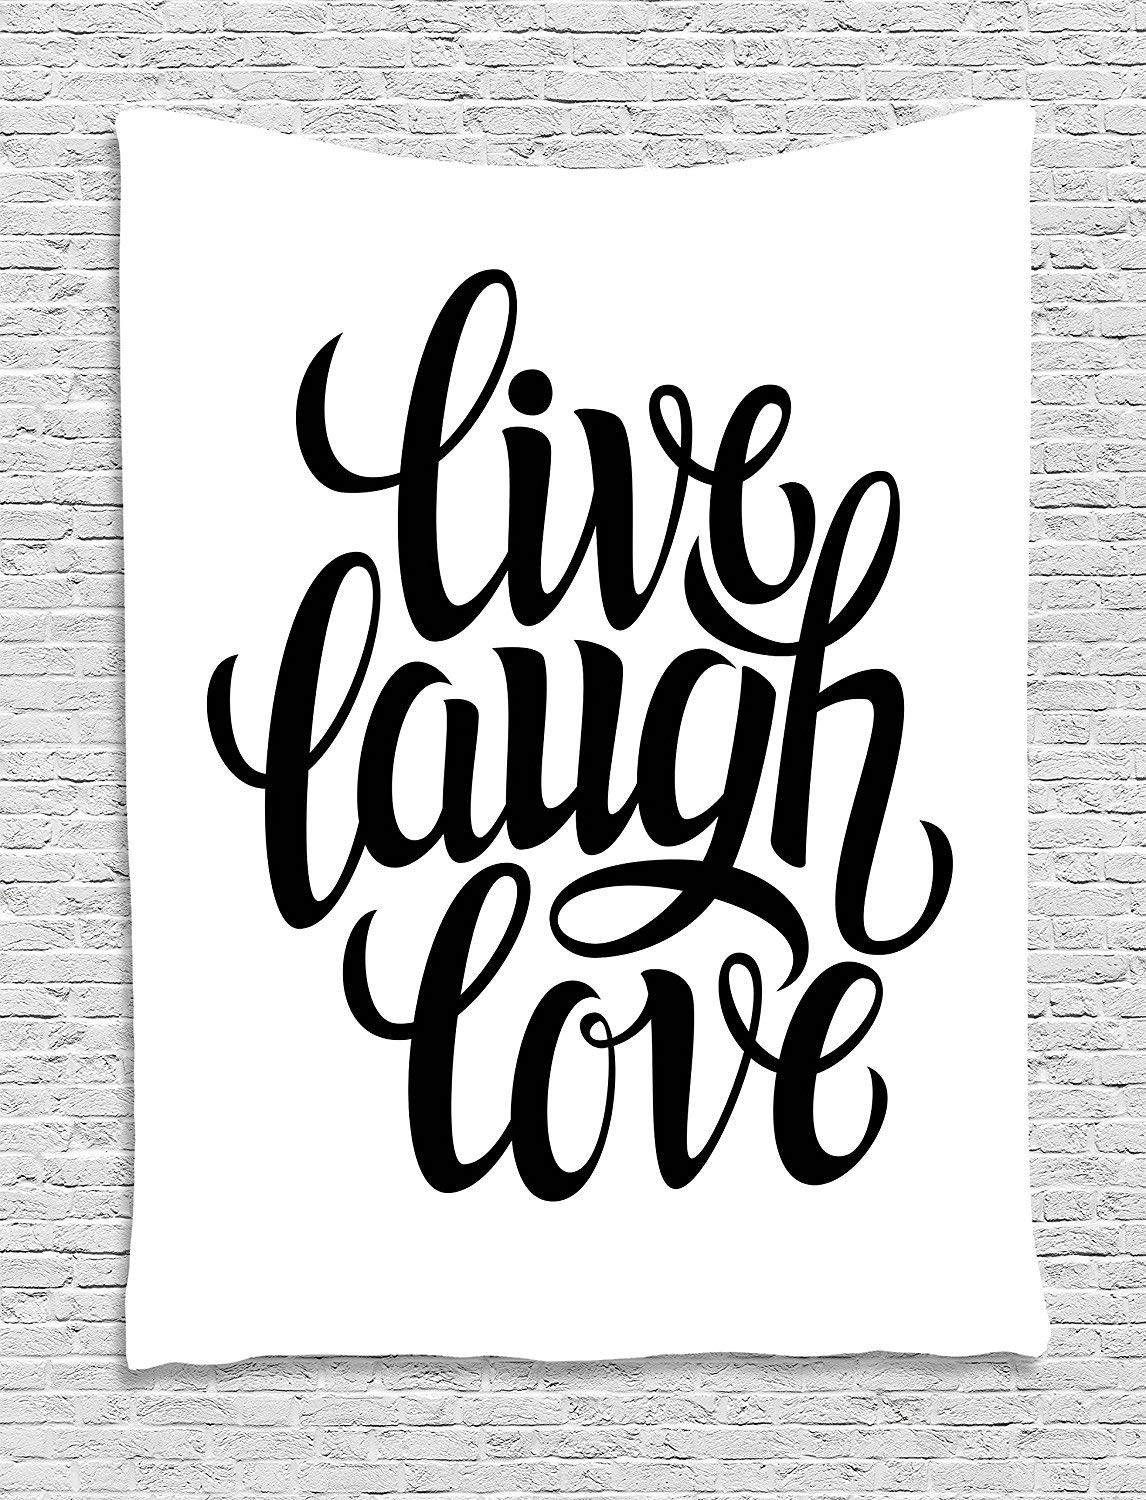 XHFITCLtd Live Laugh Love Decor Tapestry, Simplistic Inspiration Quote Minimalist Featured Typography Design, Wall Hanging for Bedroom Living Room Dorm, 60 W X 80 L Inches, Black White